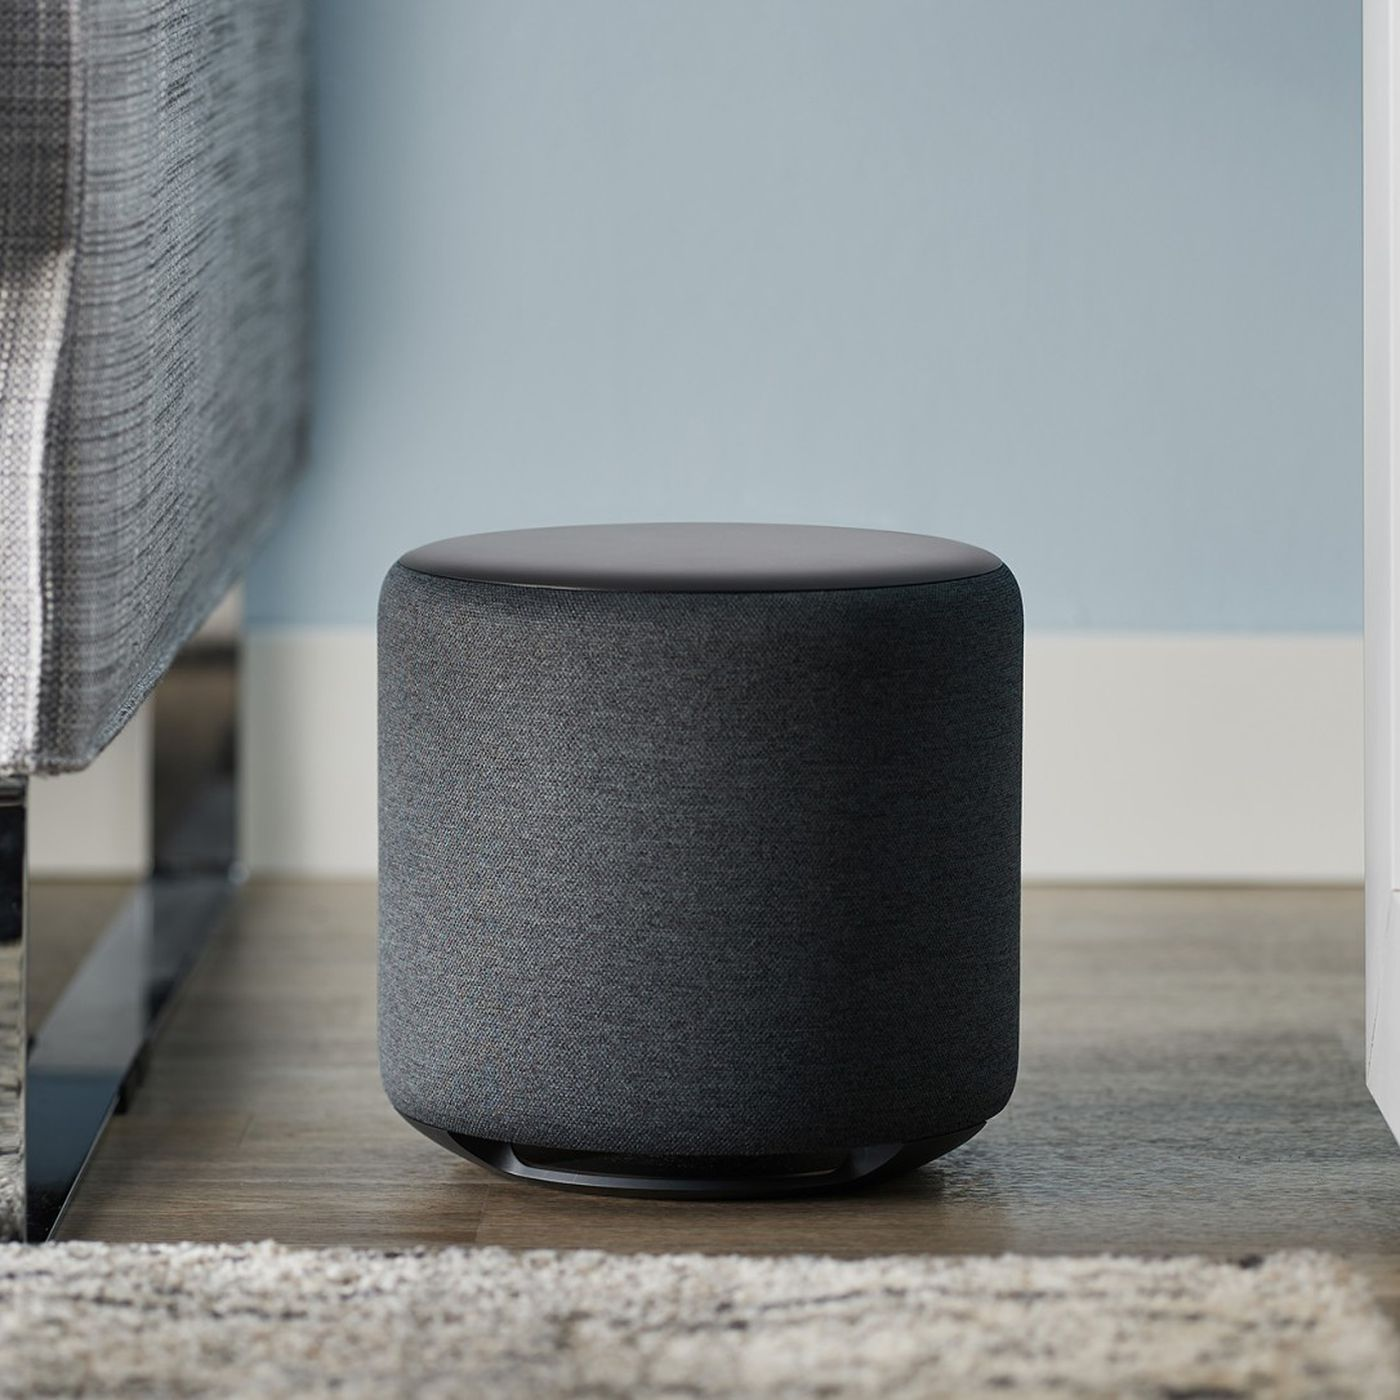 Amazon Echo Sub: a $129.99 subwoofer that pairs with Echo speakers ...